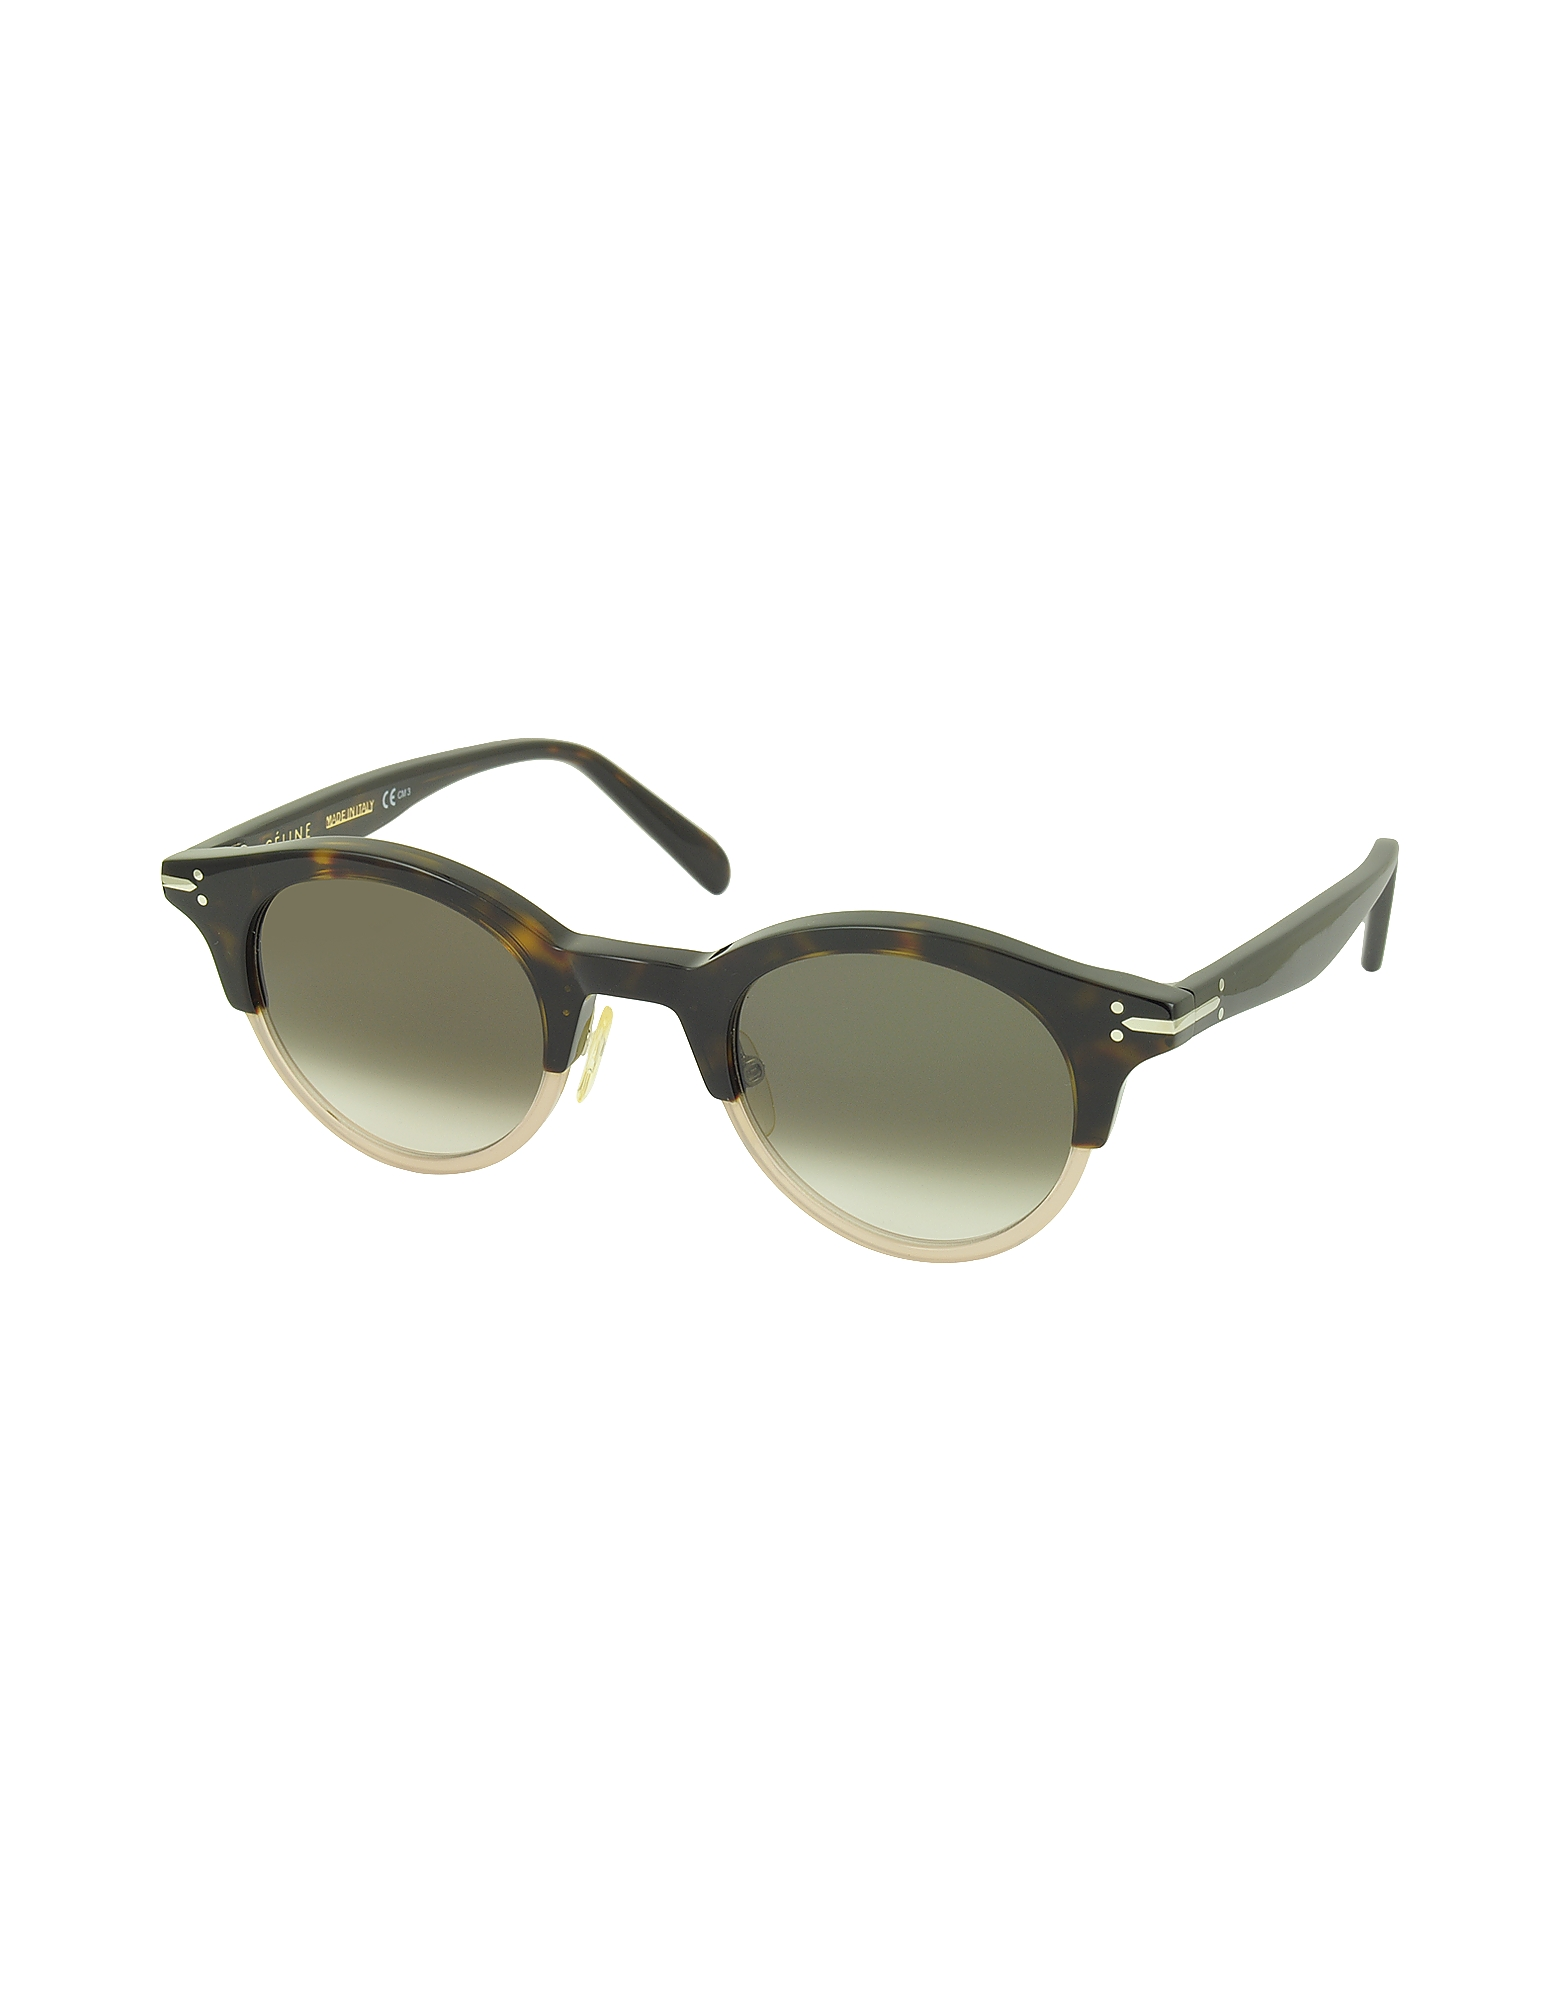 JULIA CL 41395/S Acetate Round Women's Sunglasses от Forzieri.com INT